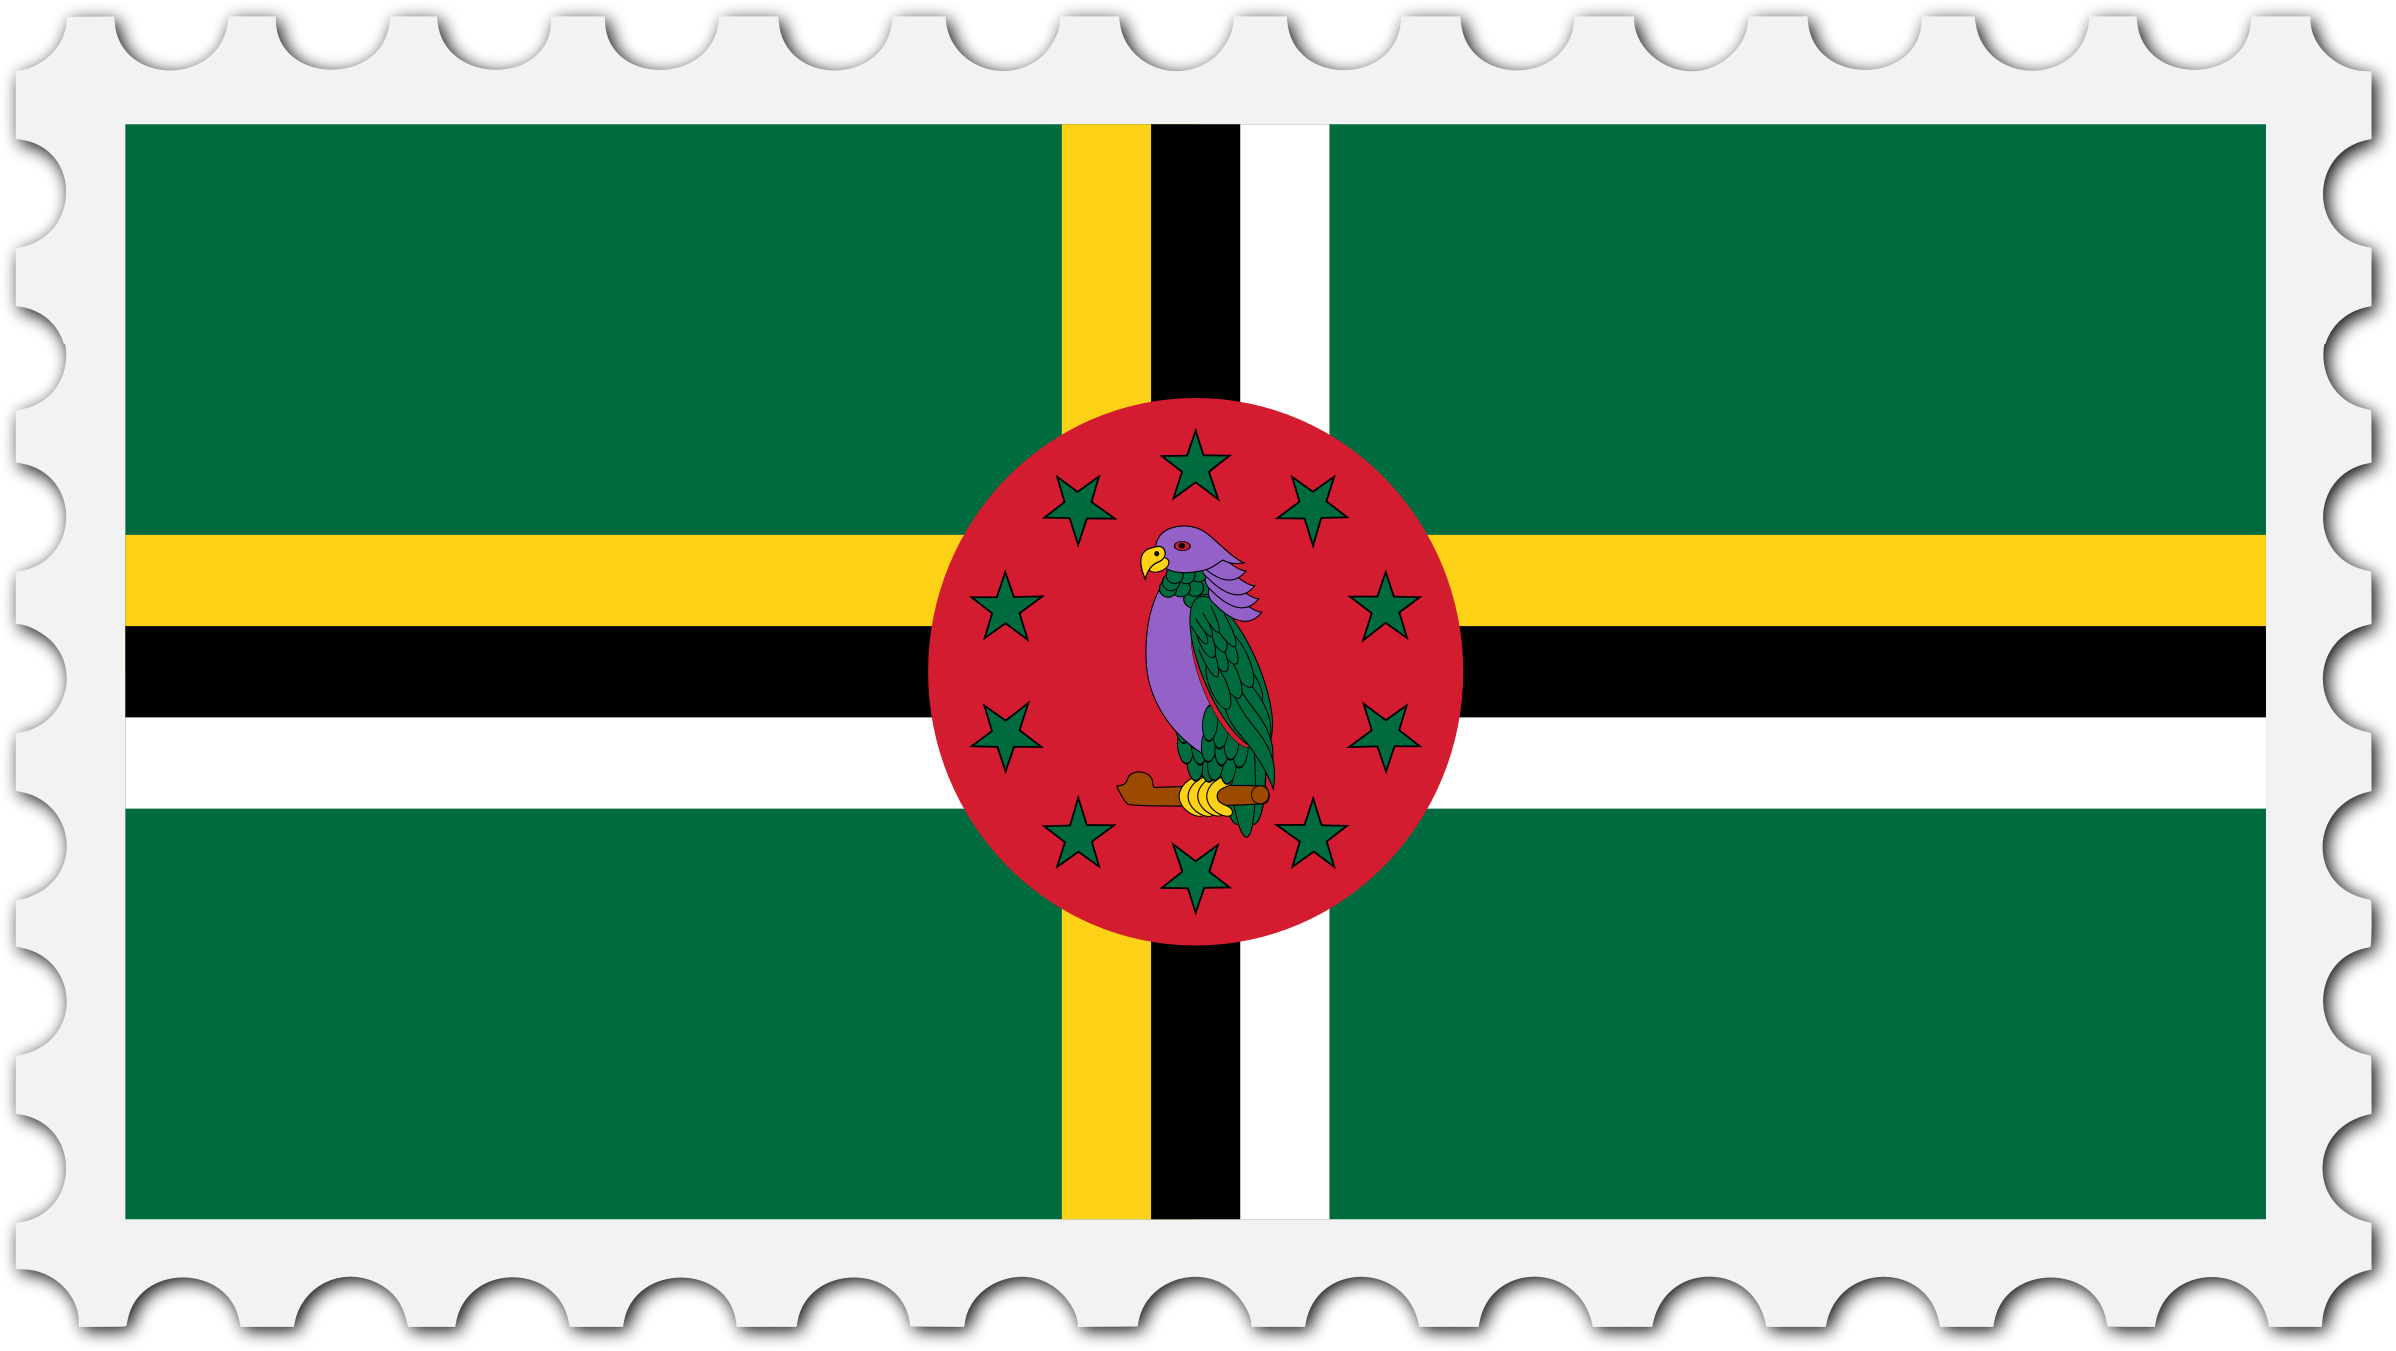 Dominica flag stamp by Firkin